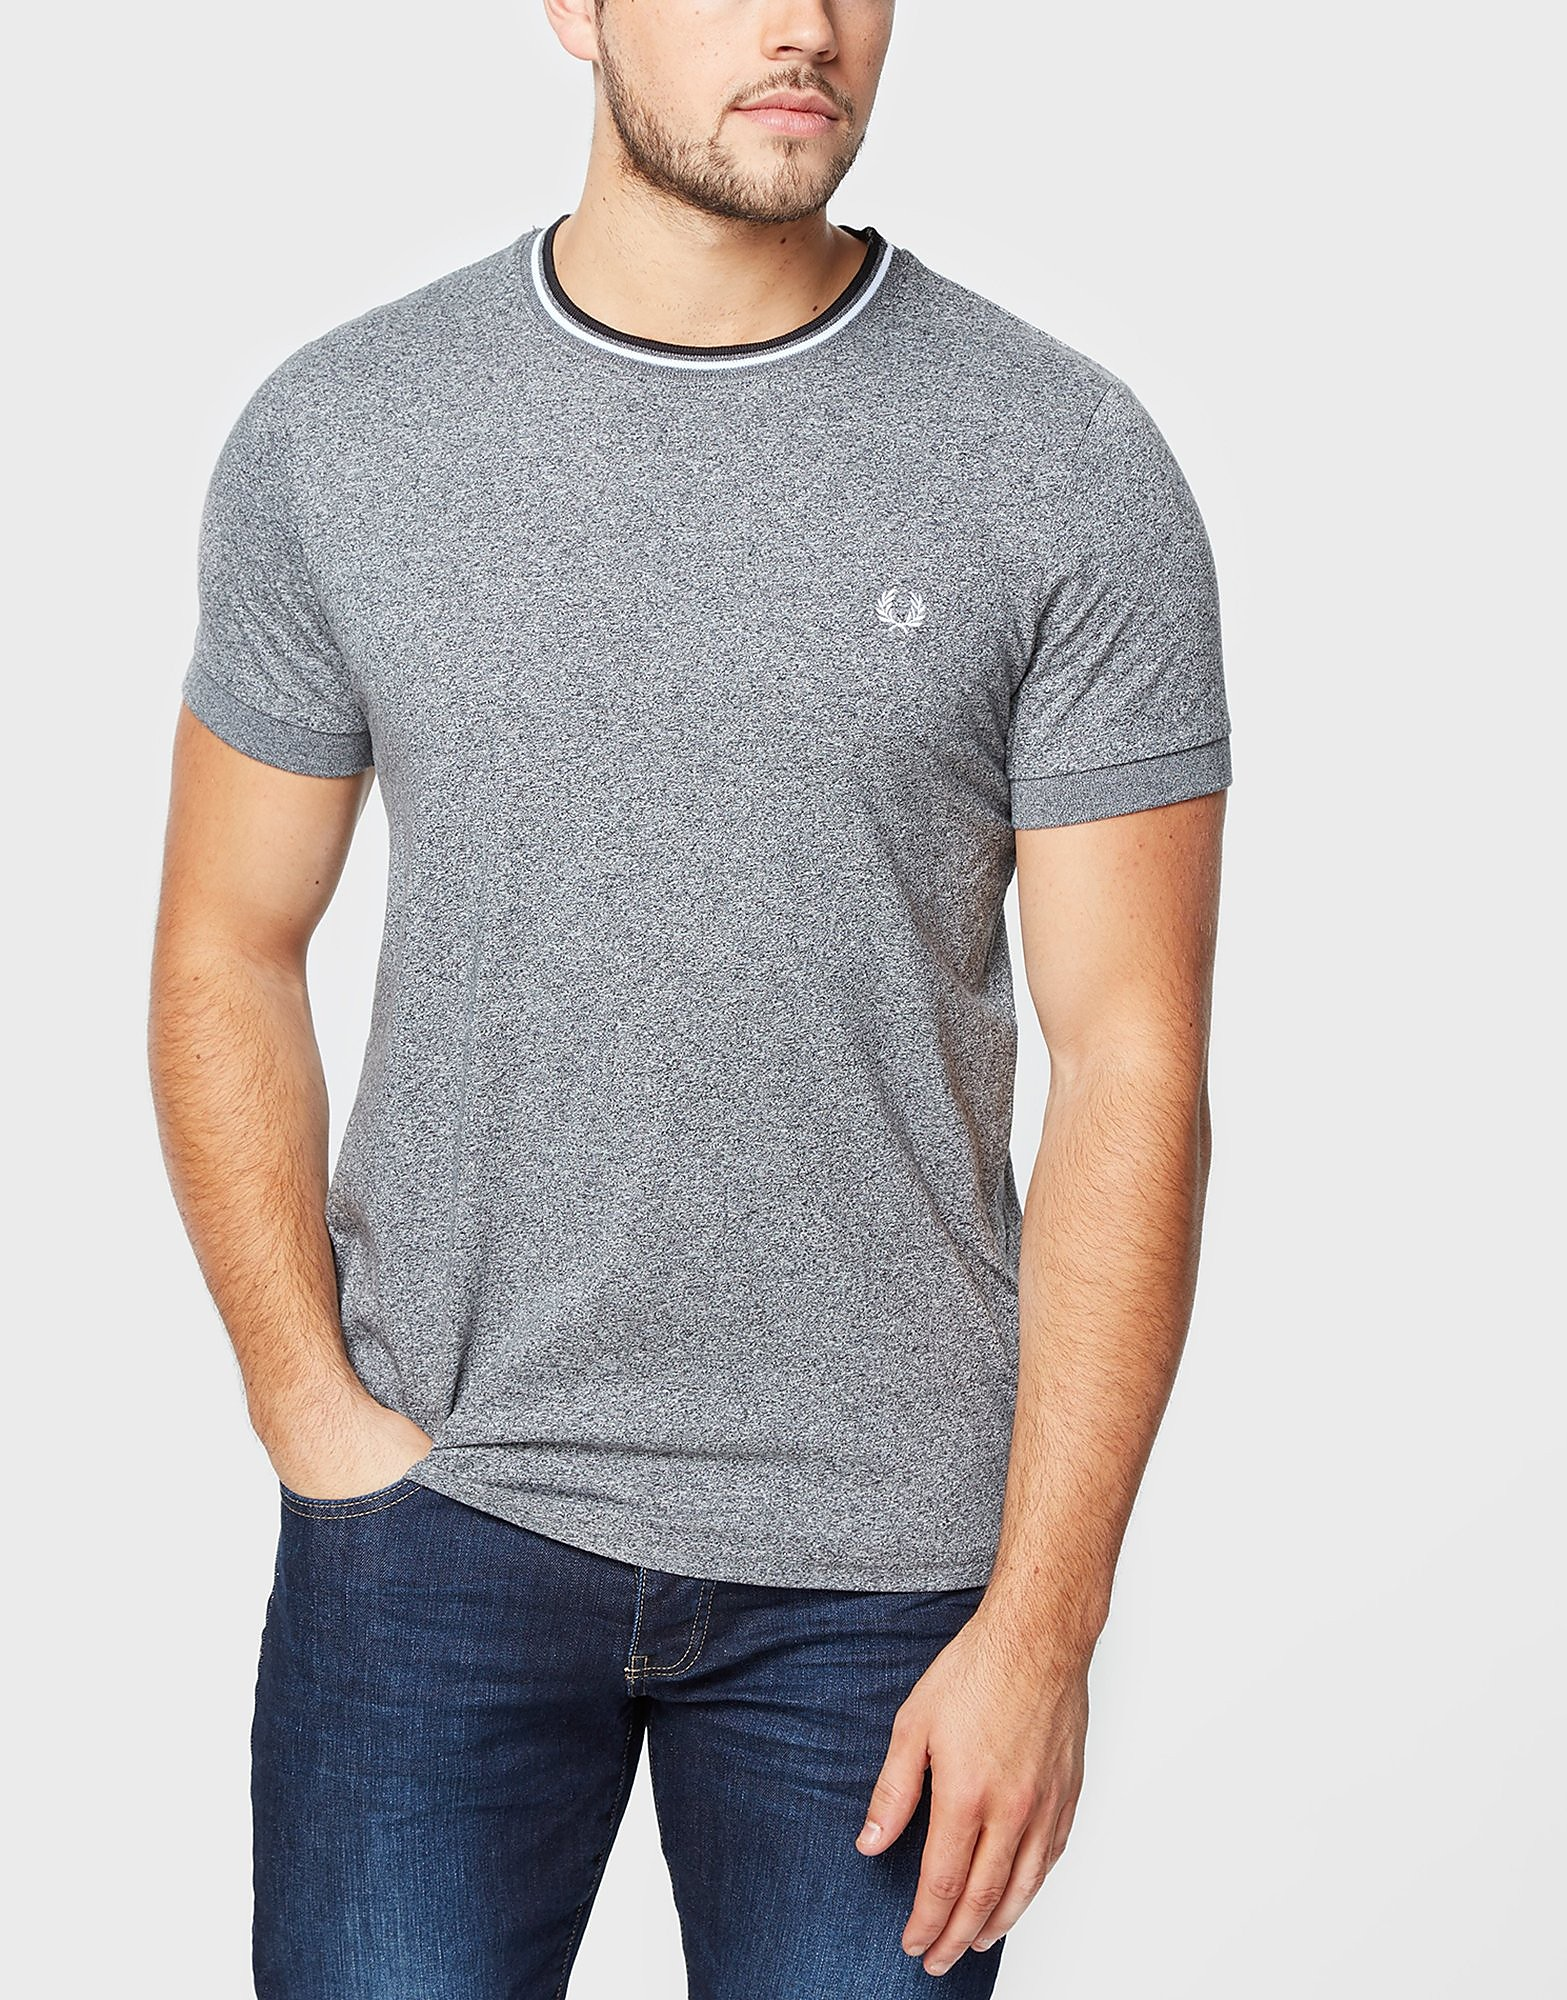 Fred Perry Tip Ringer T-Shirt - Exclusive